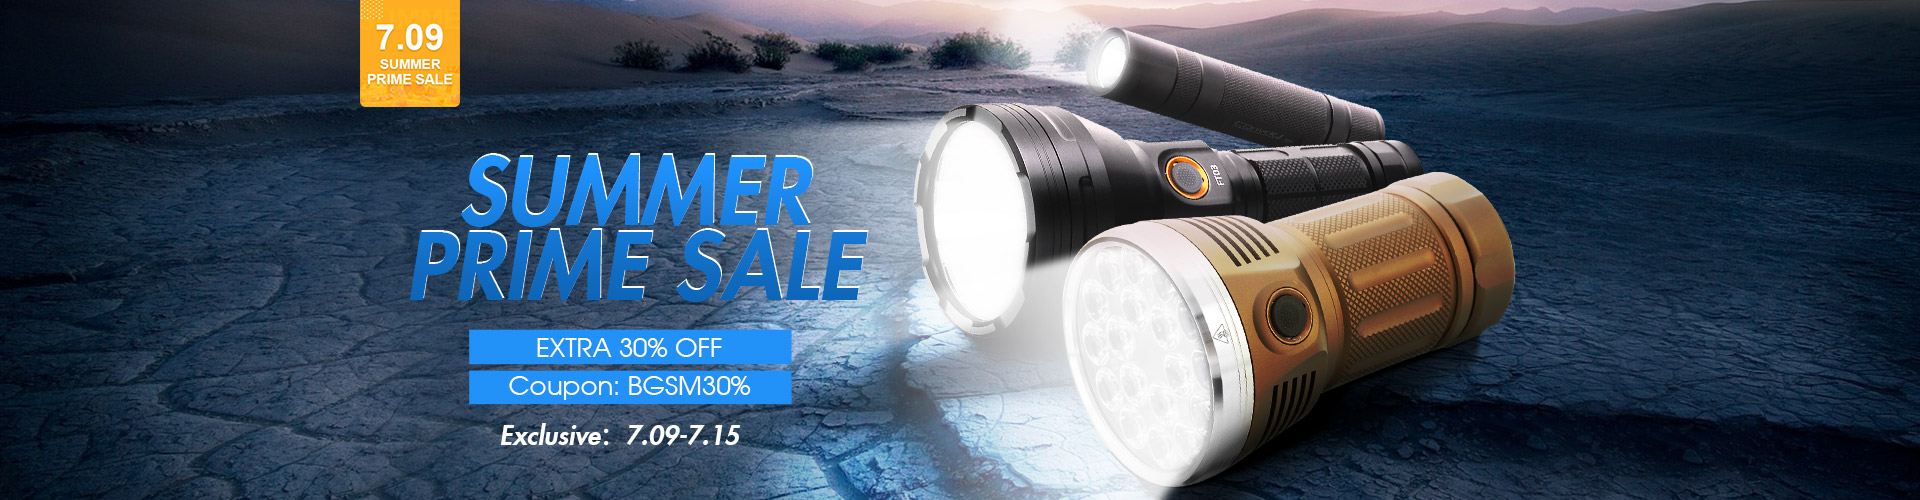 https://www.banggood.com/marketing-Summer-Prime-Sale-Extra-30-Percent-Off-For-Flashlights/tid-3068.html